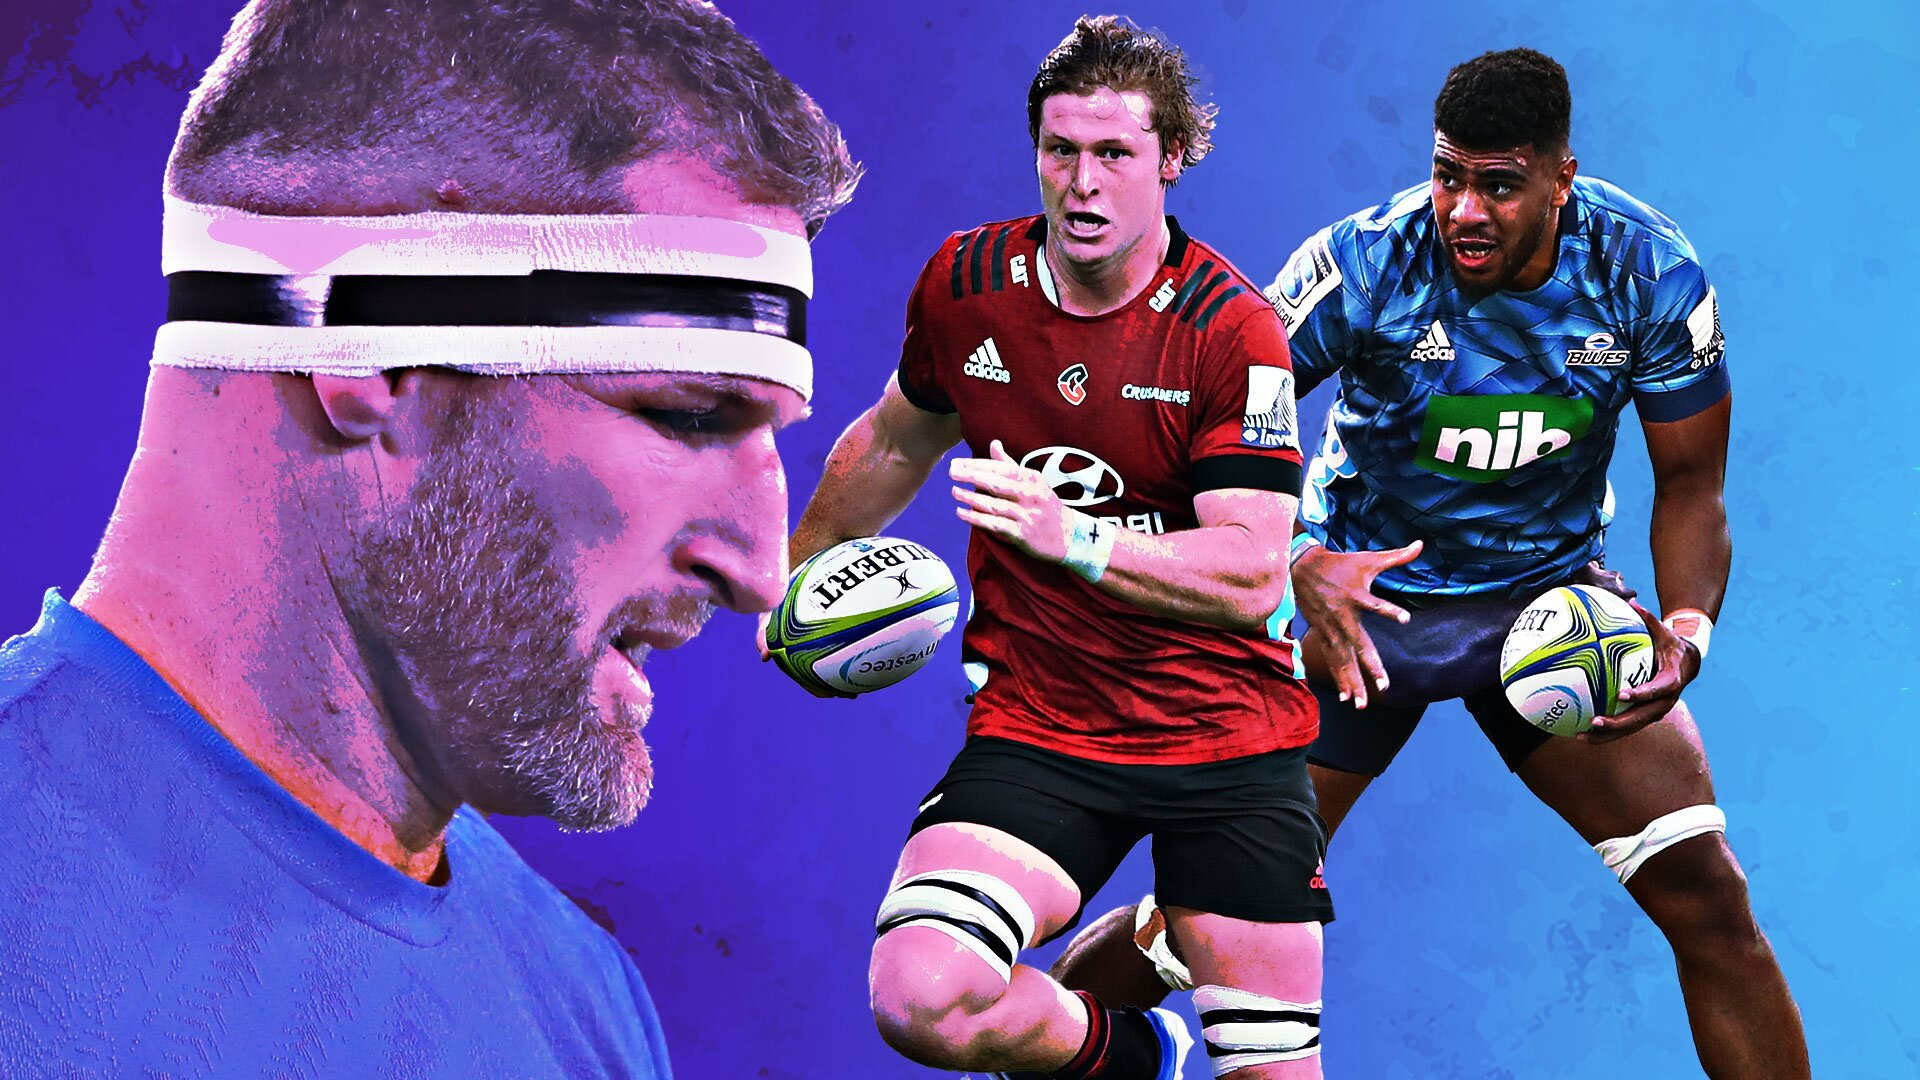 Kieran Read's replacements have already been found - but who will win the race to the black jersey?